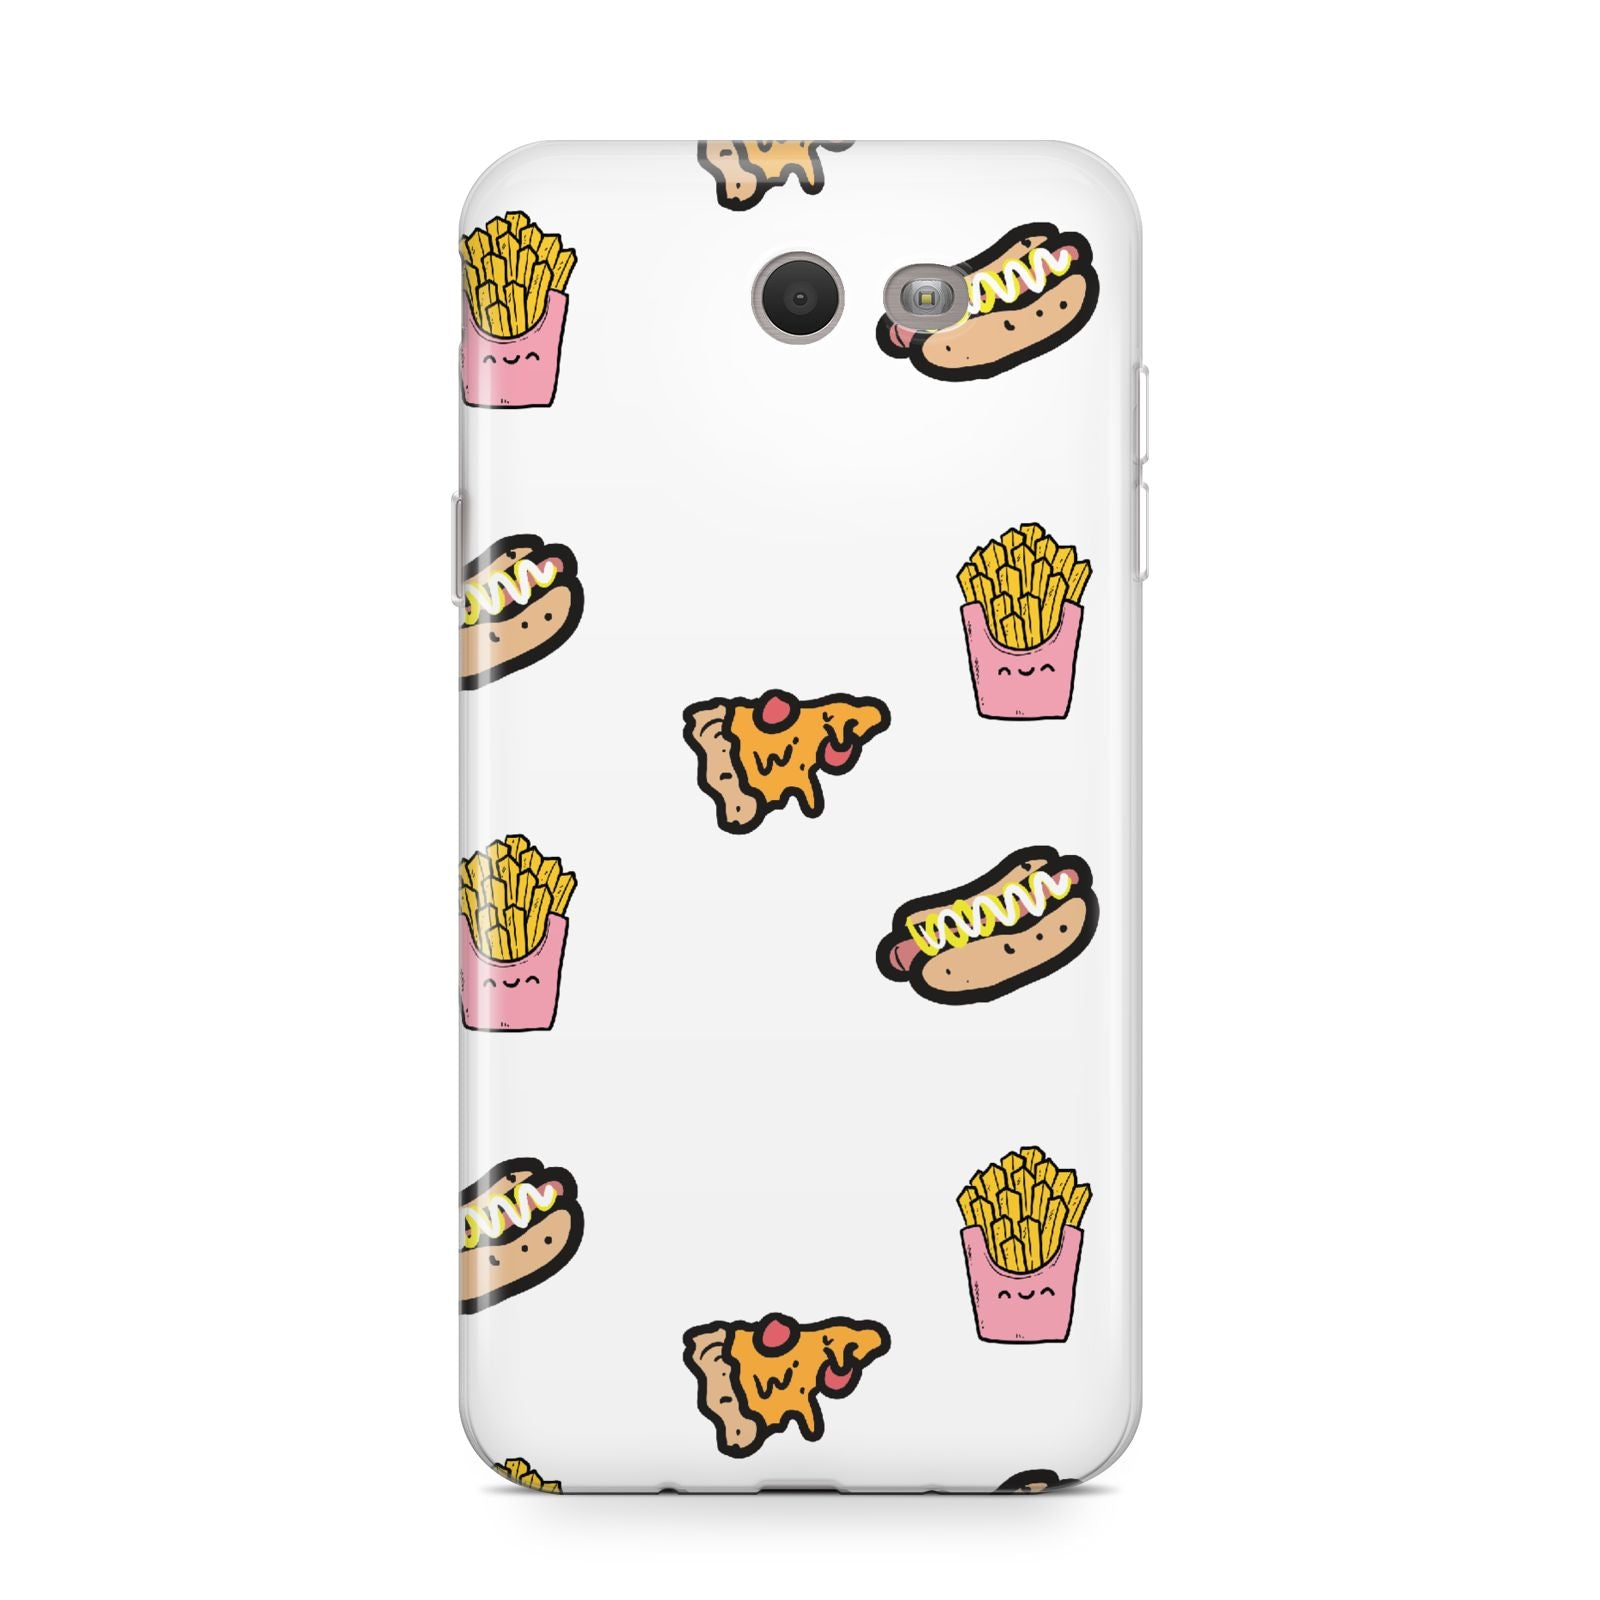 Fries Pizza Hot Dog Samsung Galaxy J7 2017 Case